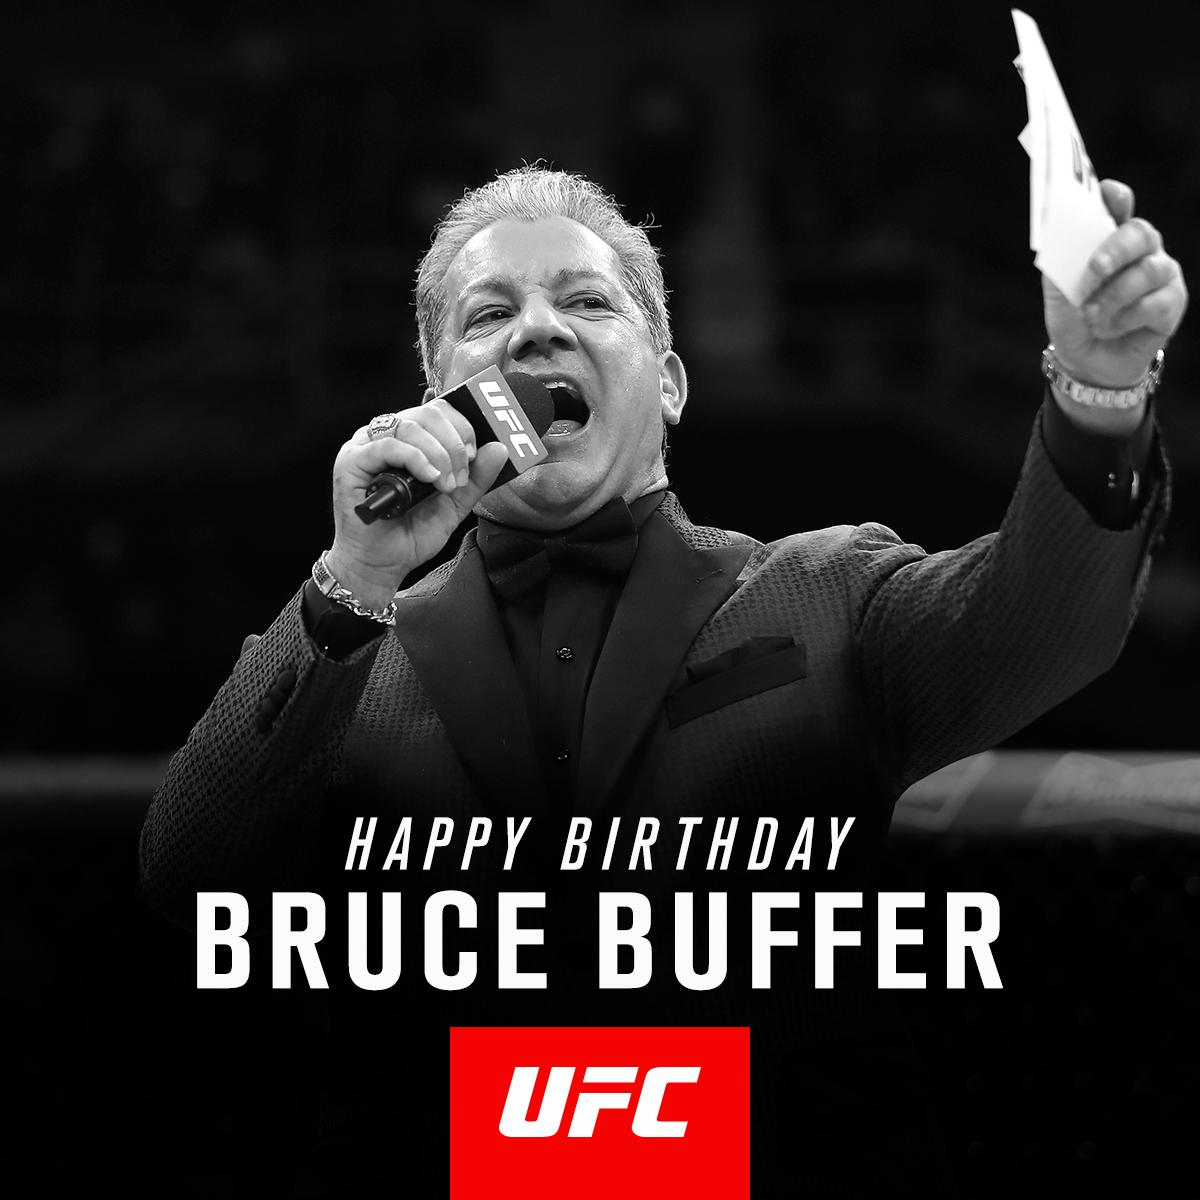 Happy Birthday to the 'Veteran Voice of the Octagon' @BruceBuffer! https://t.co/qfvVHCcr0U